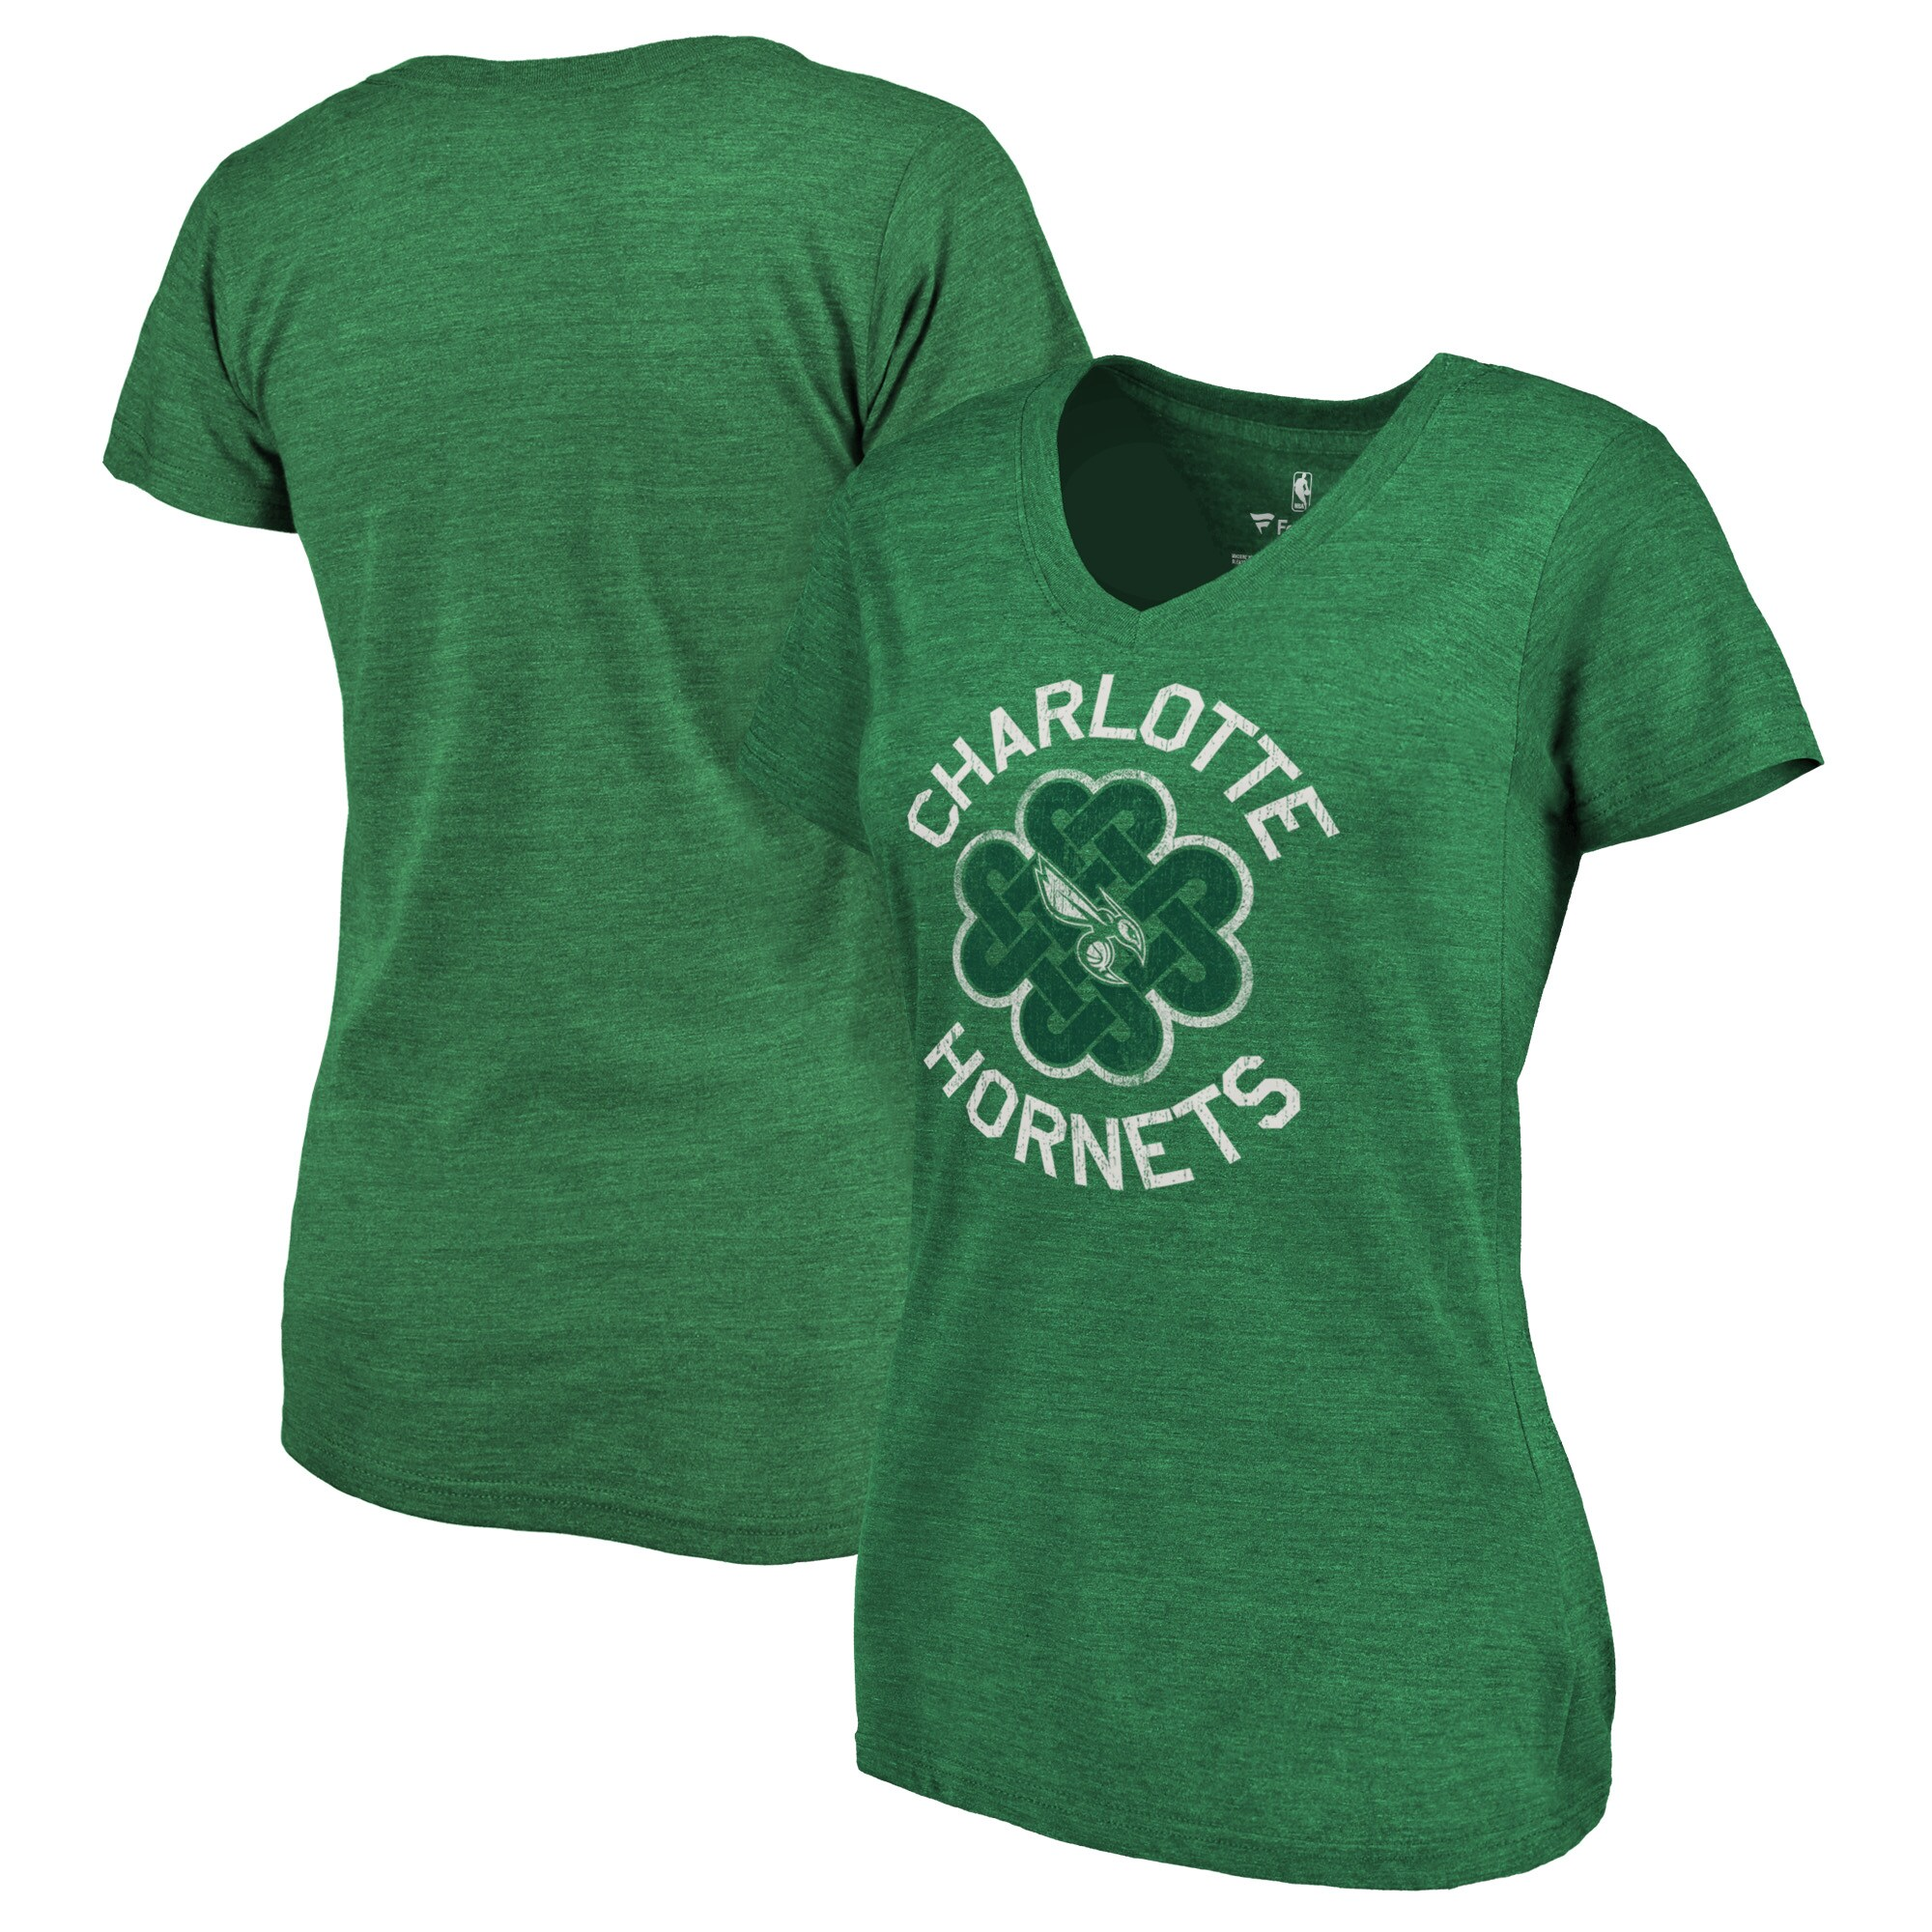 Charlotte Hornets Fanatics Branded Women's St. Patrick's Day Luck Tradition Tri-Blend V-Neck T-Shirt - Green